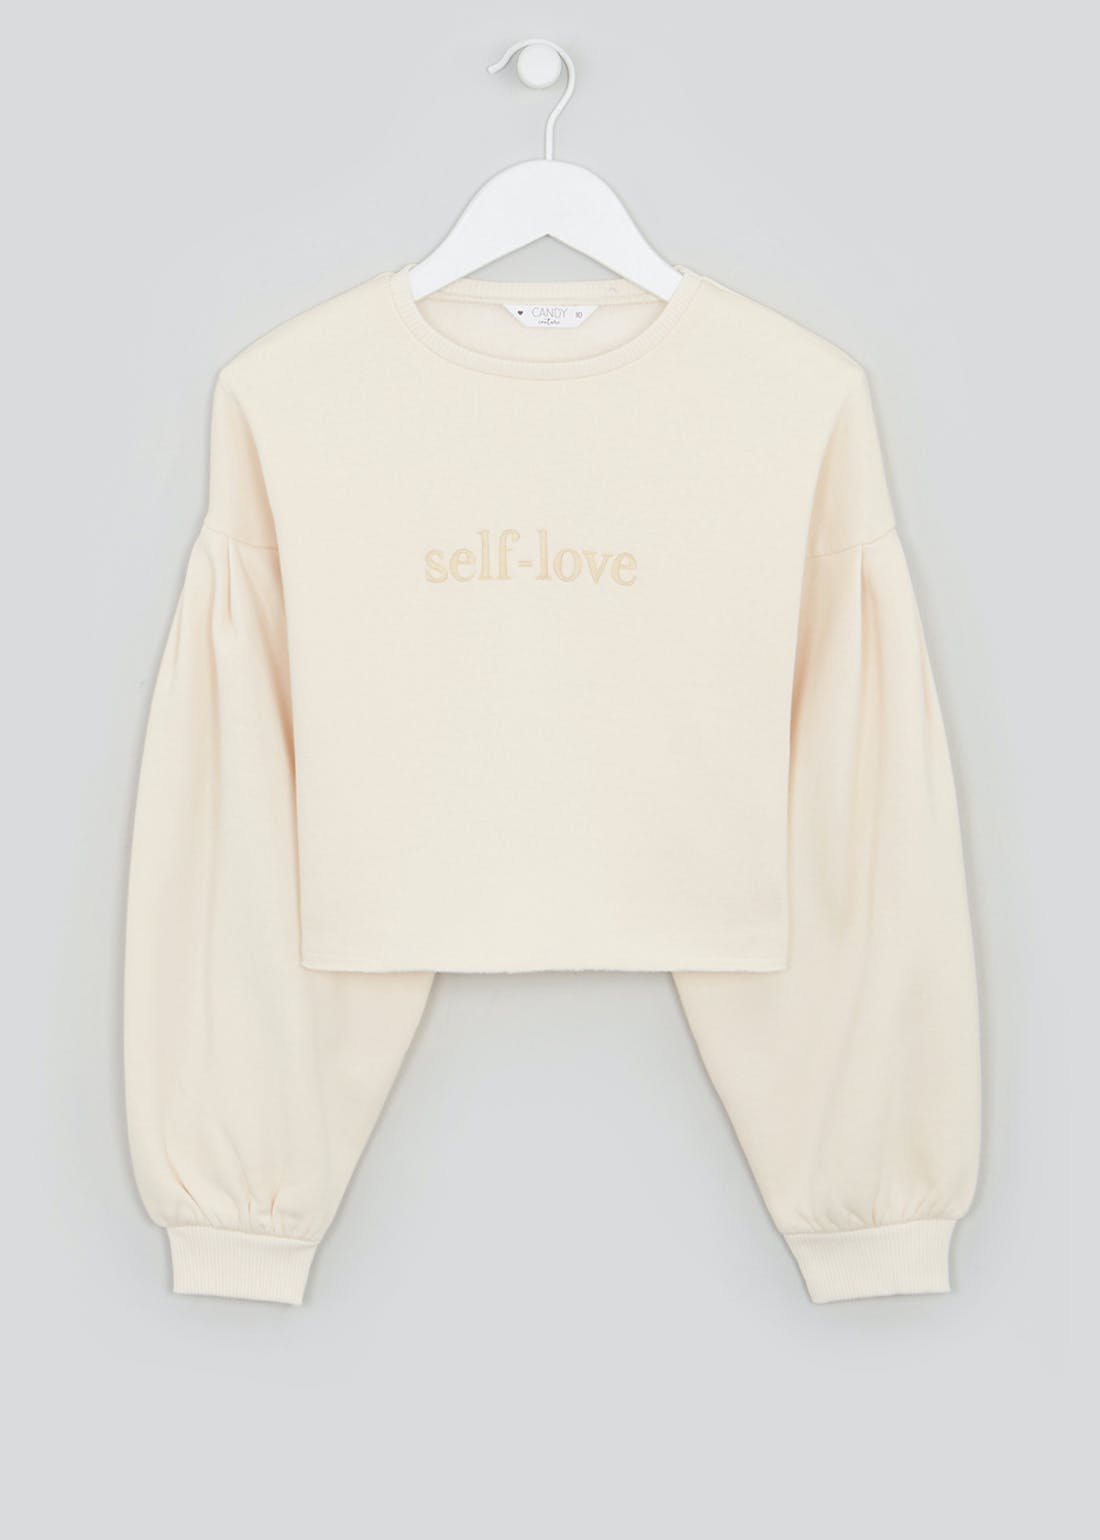 Girls Candy Couture Self Love Cropped Sweatshirt (9-16yrs)